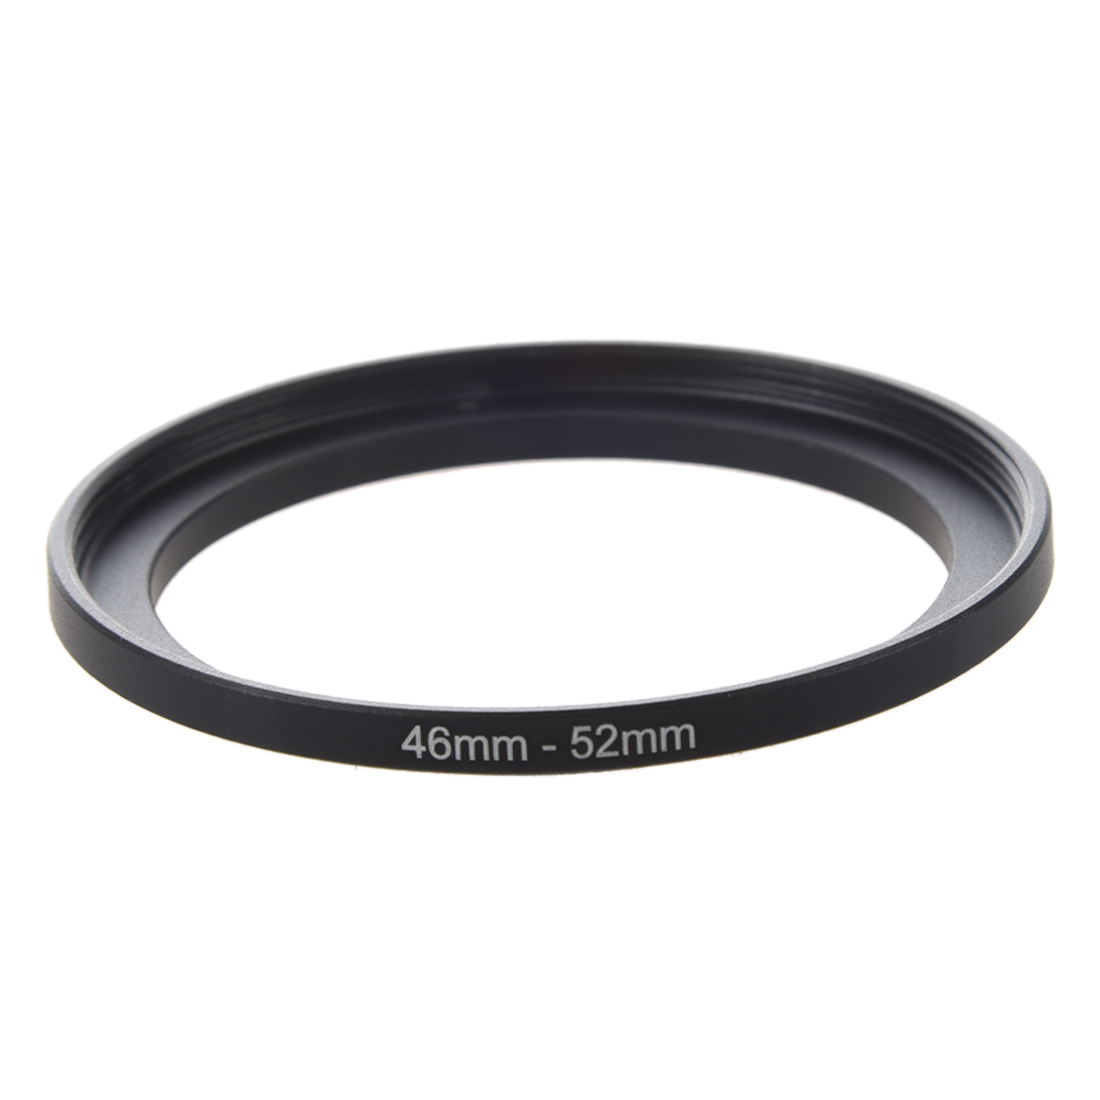 Kamera Tamiri için 46mm 52mm Metal Step Up Filtre Halka Adaptörü